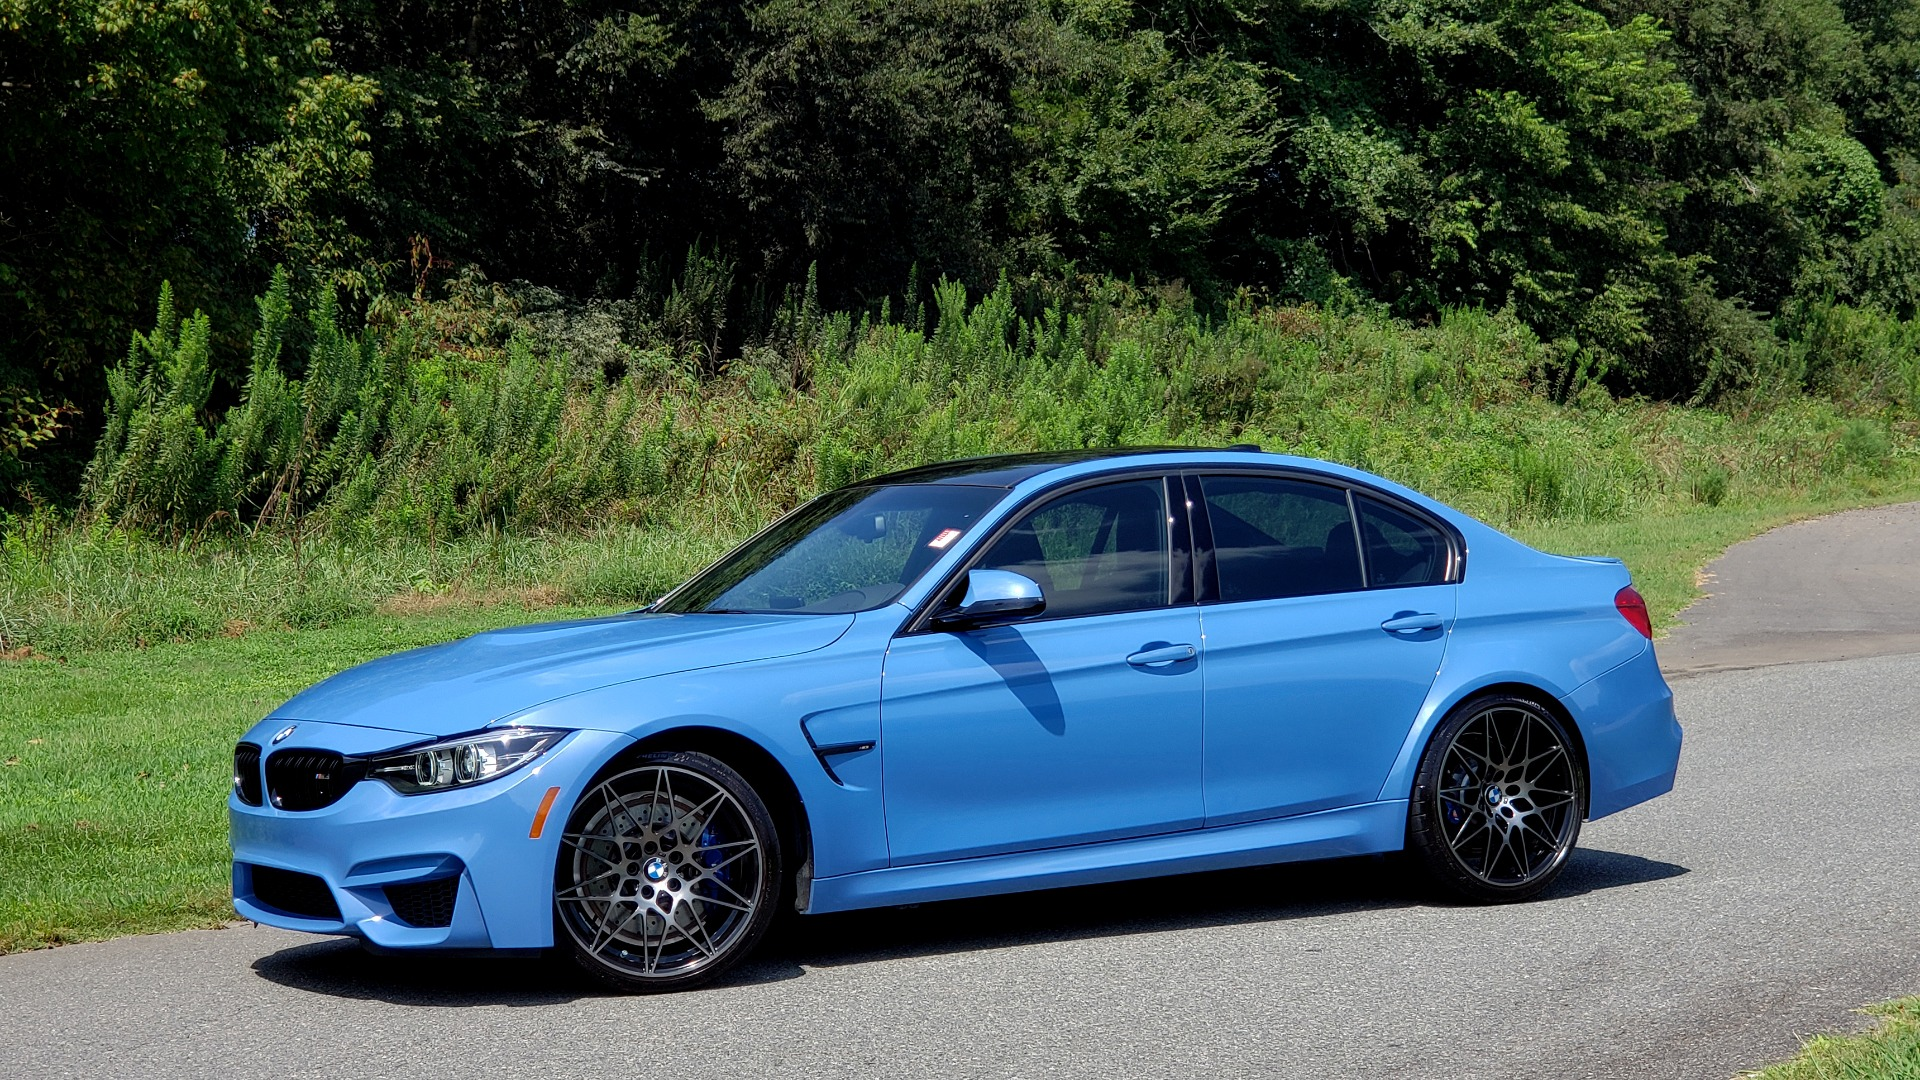 Used 2018 BMW M3 COMPETITION PKG / 6-SPD MANUAL / NAV / CARBON FIBER ROOF / REARVIEW for sale Sold at Formula Imports in Charlotte NC 28227 4